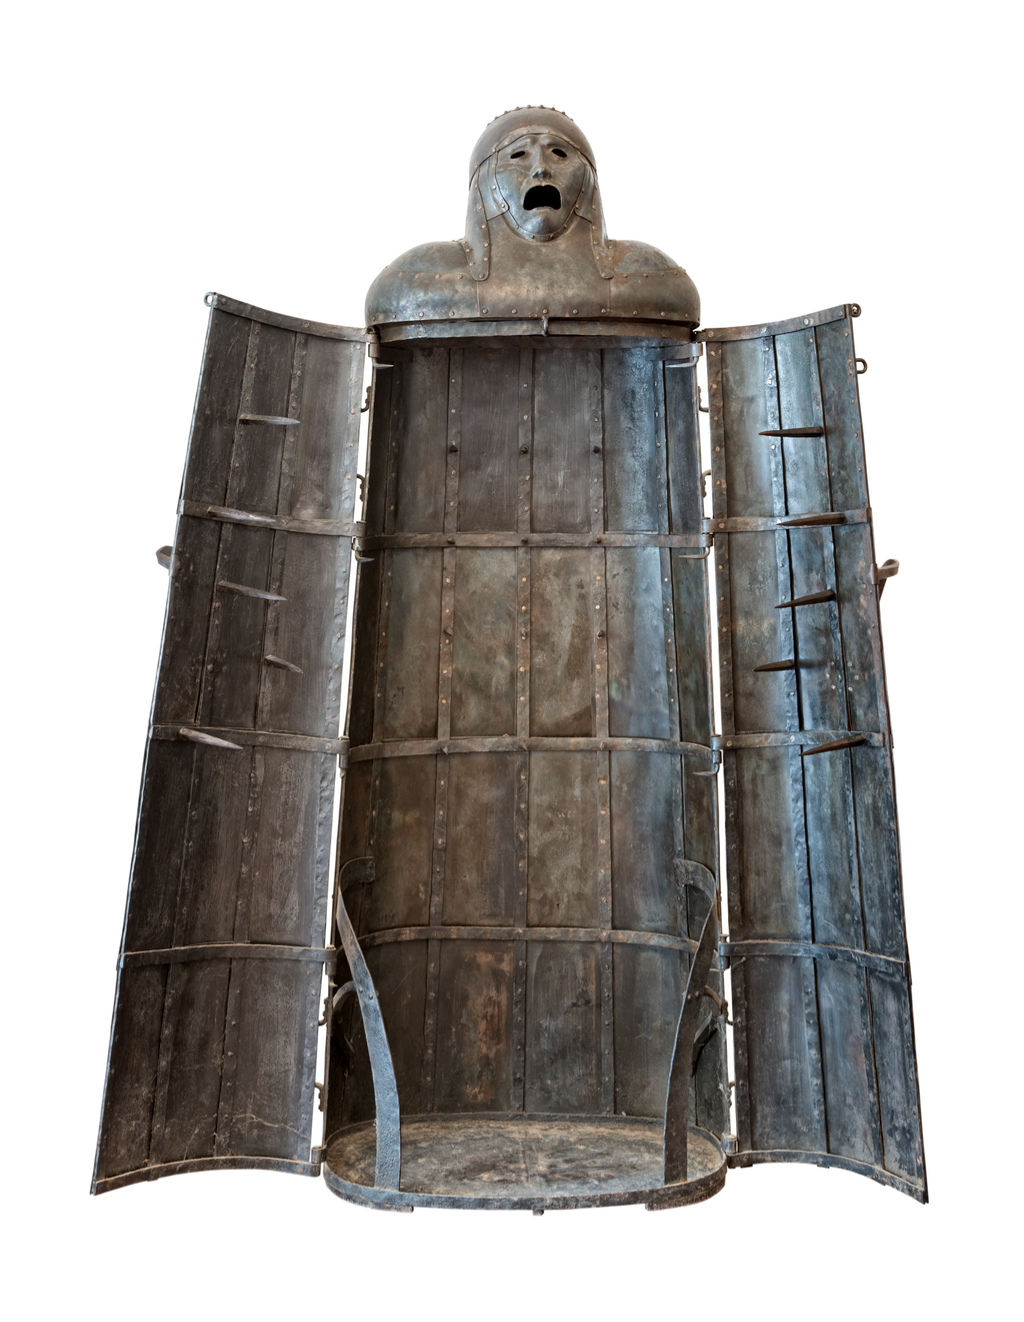 Iron Maiden Torture Device Things You Believed That Aren't True